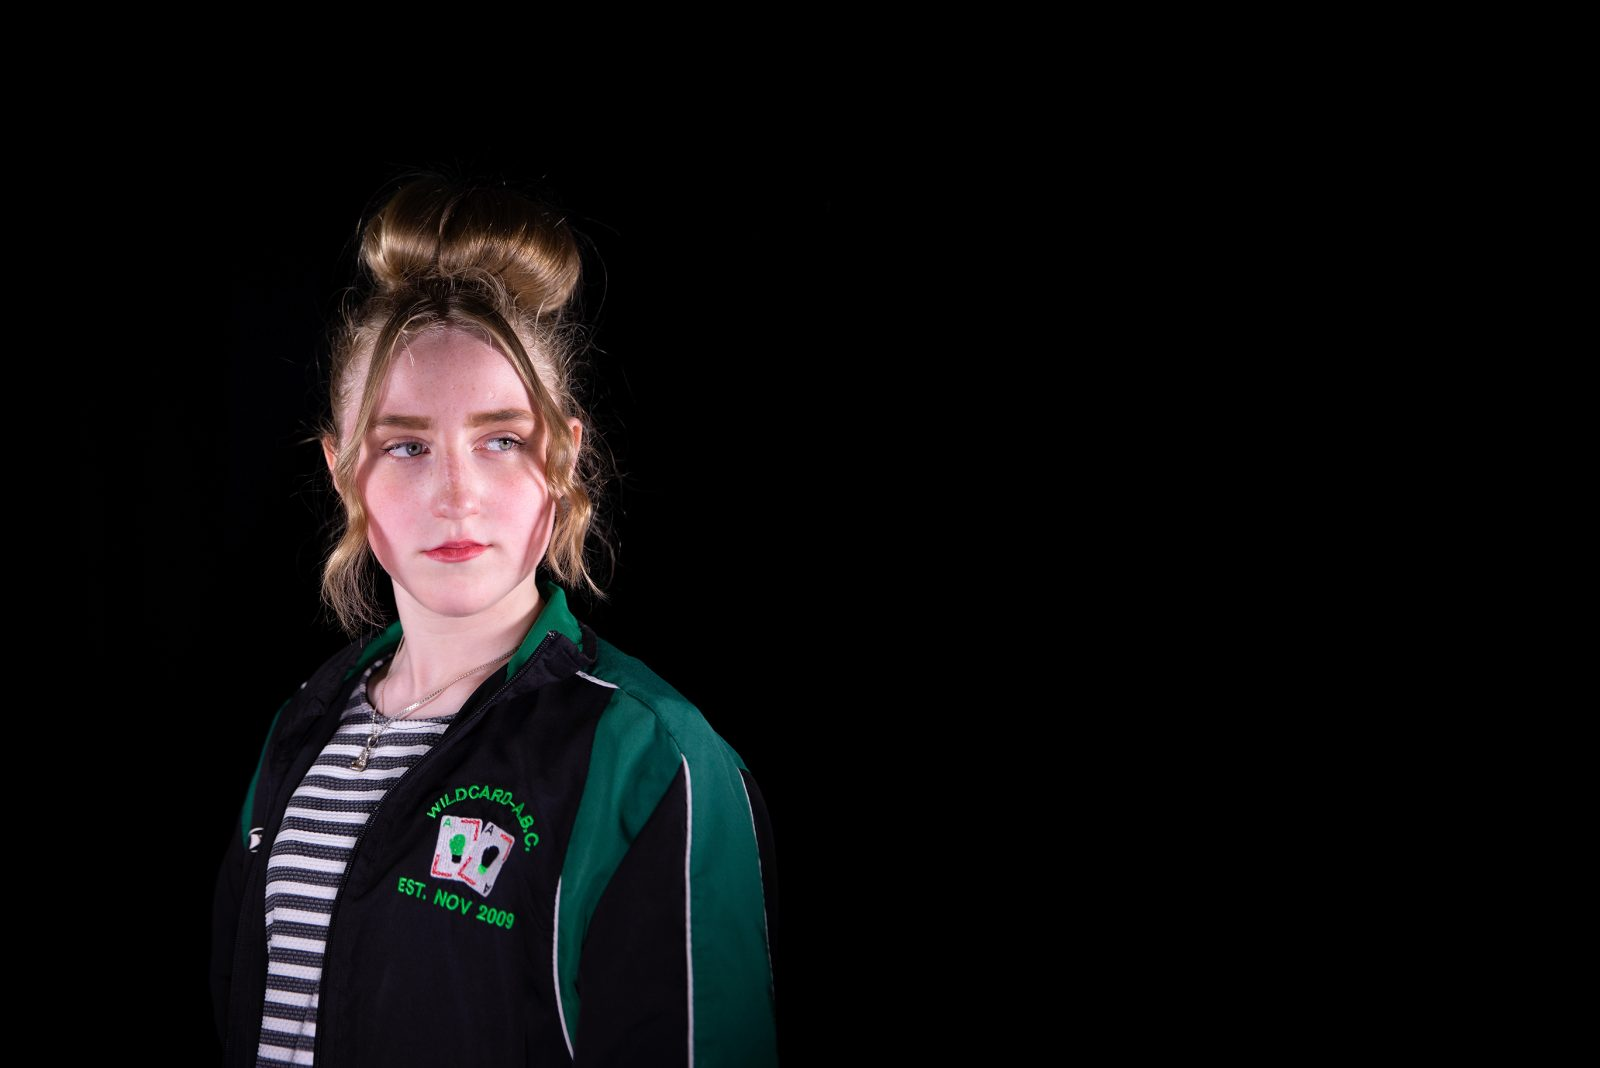 A young woman wearing a striped top and a black and green sports jacket stands a looks to one side.